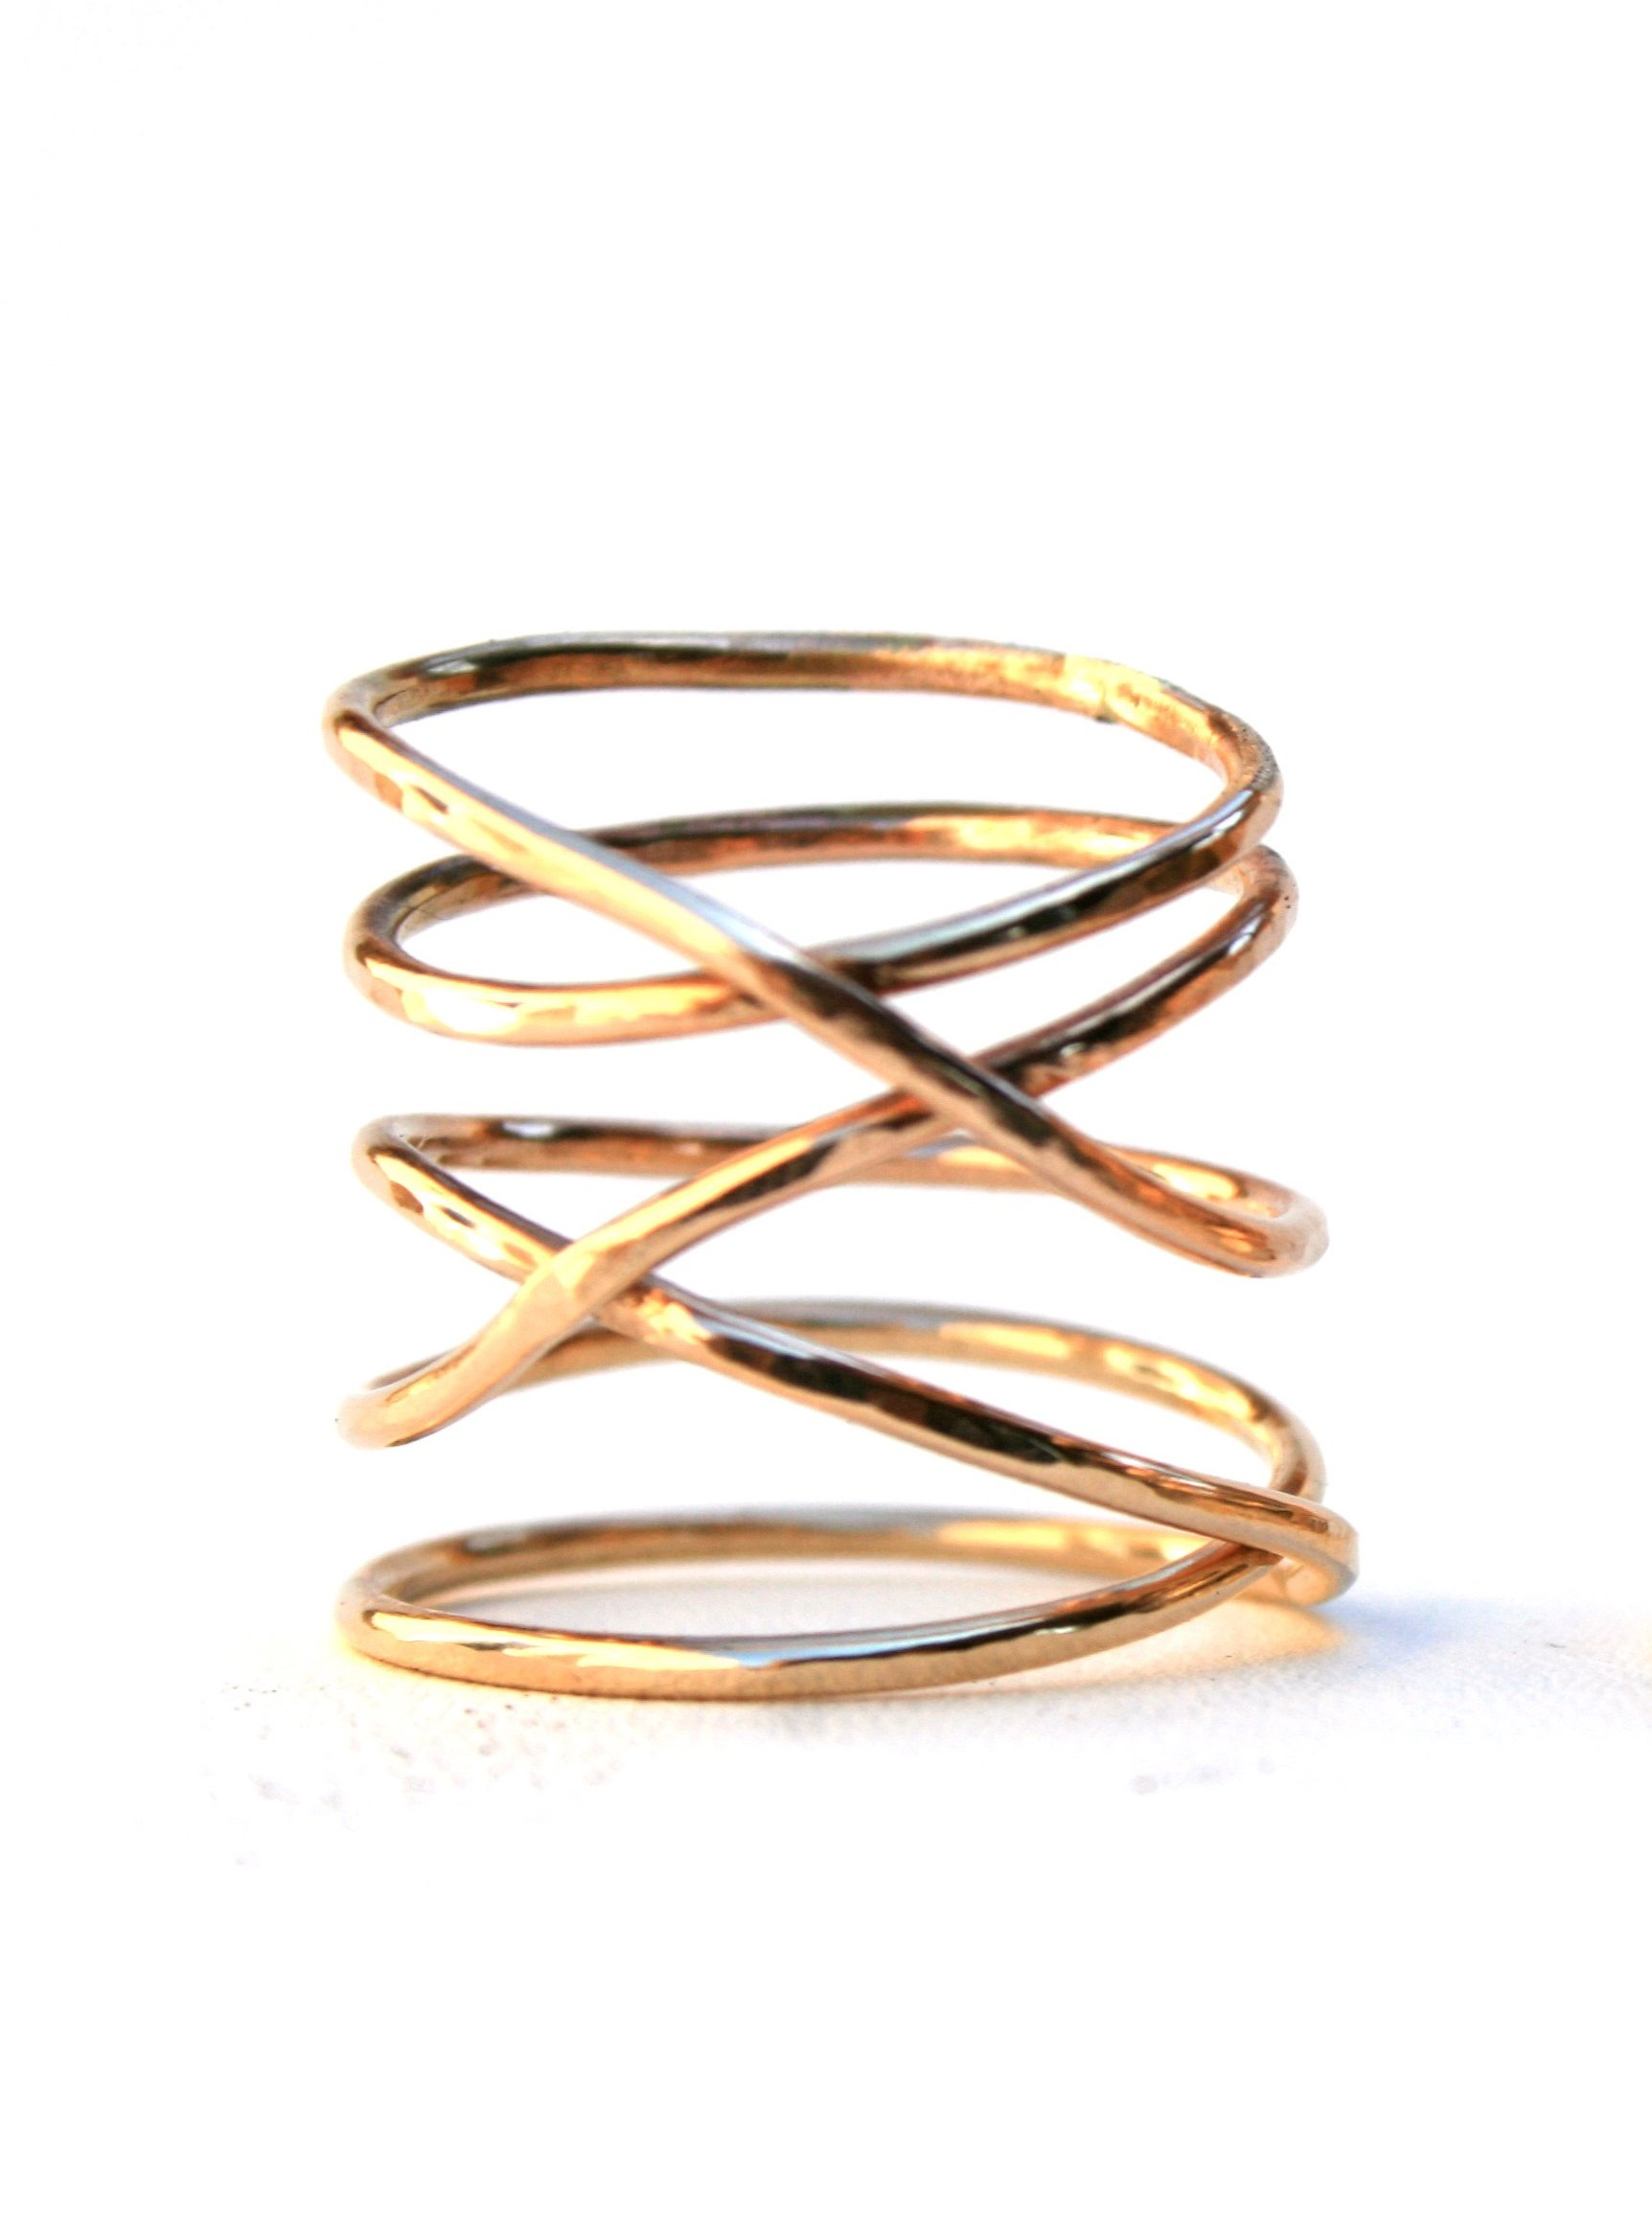 14k Gold Filled Twisted Ring -Thin Hammered Stacking Ring (6.5)